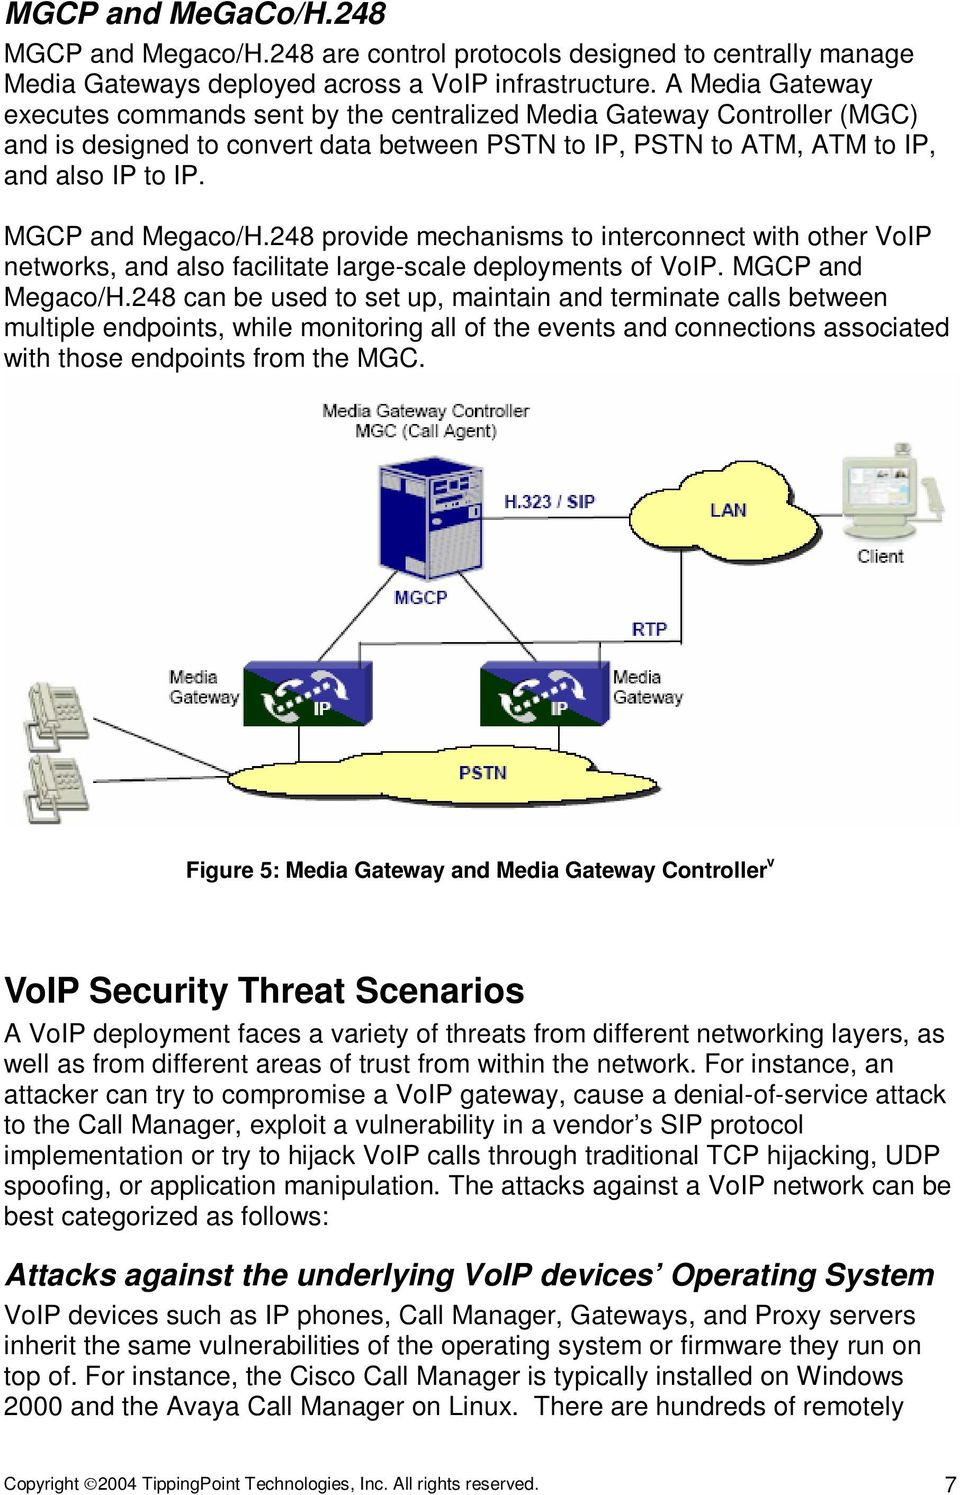 MGCP and Megaco/H.248 provide mechanisms to interconnect with other VoIP networks, and also facilitate large-scale deployments of VoIP. MGCP and Megaco/H.